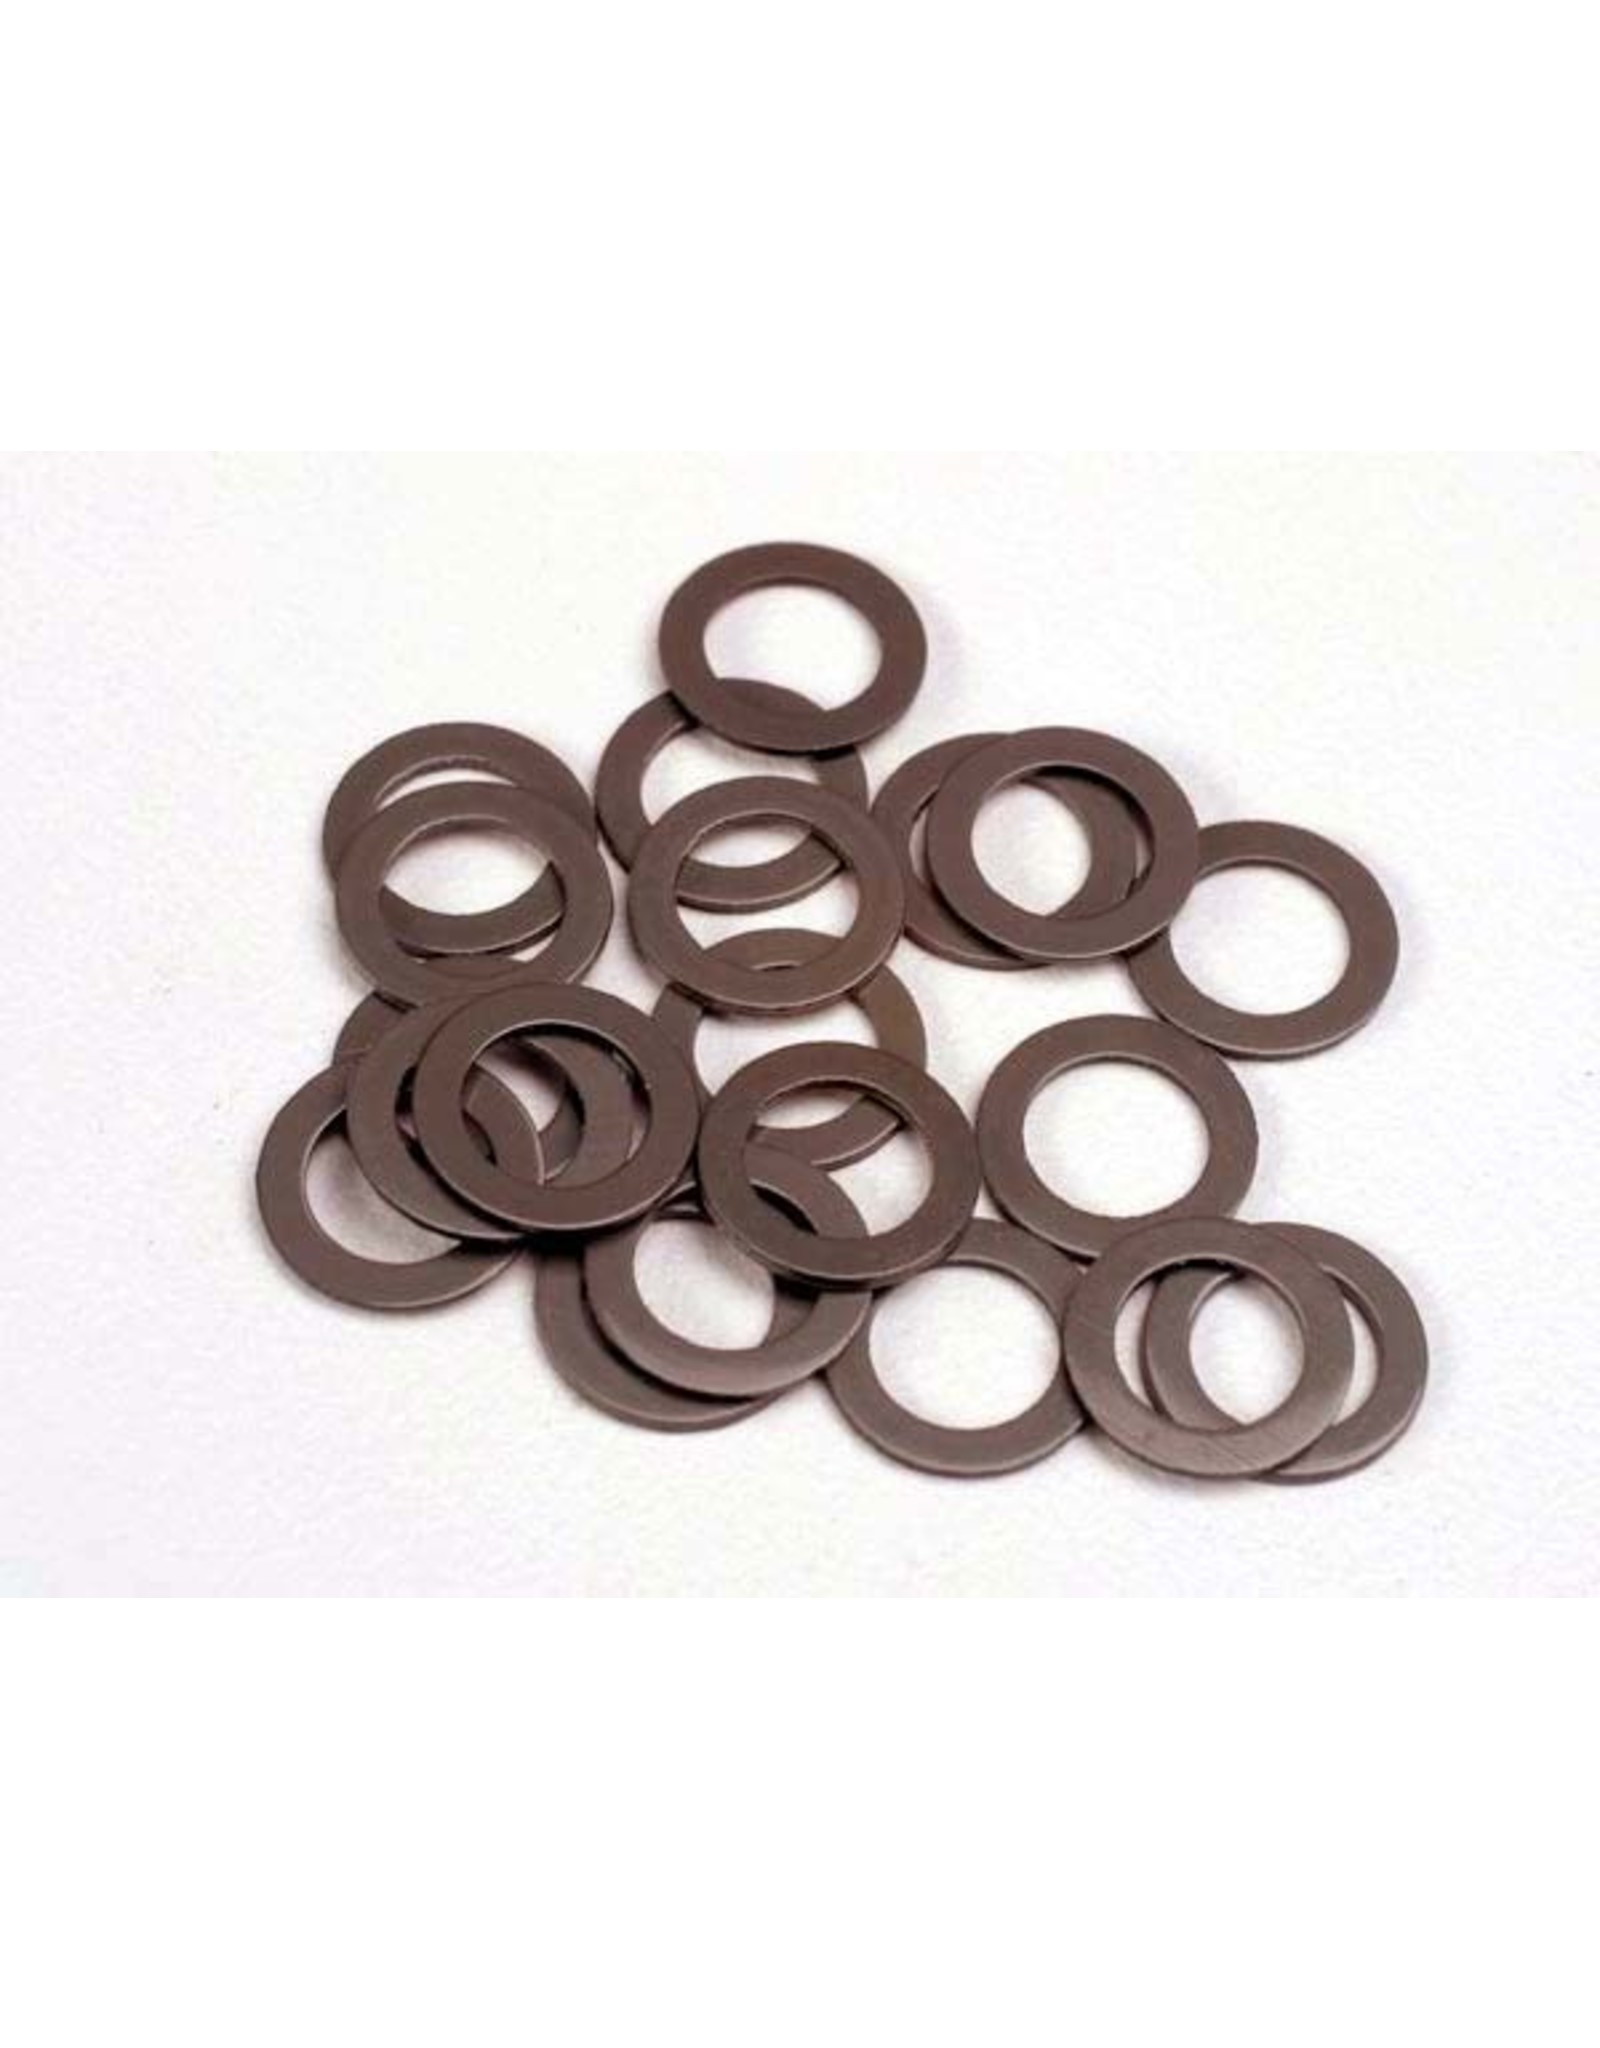 Traxxas 1985 - PTFE-Coated Washers, 5x8x0.5mm (20)